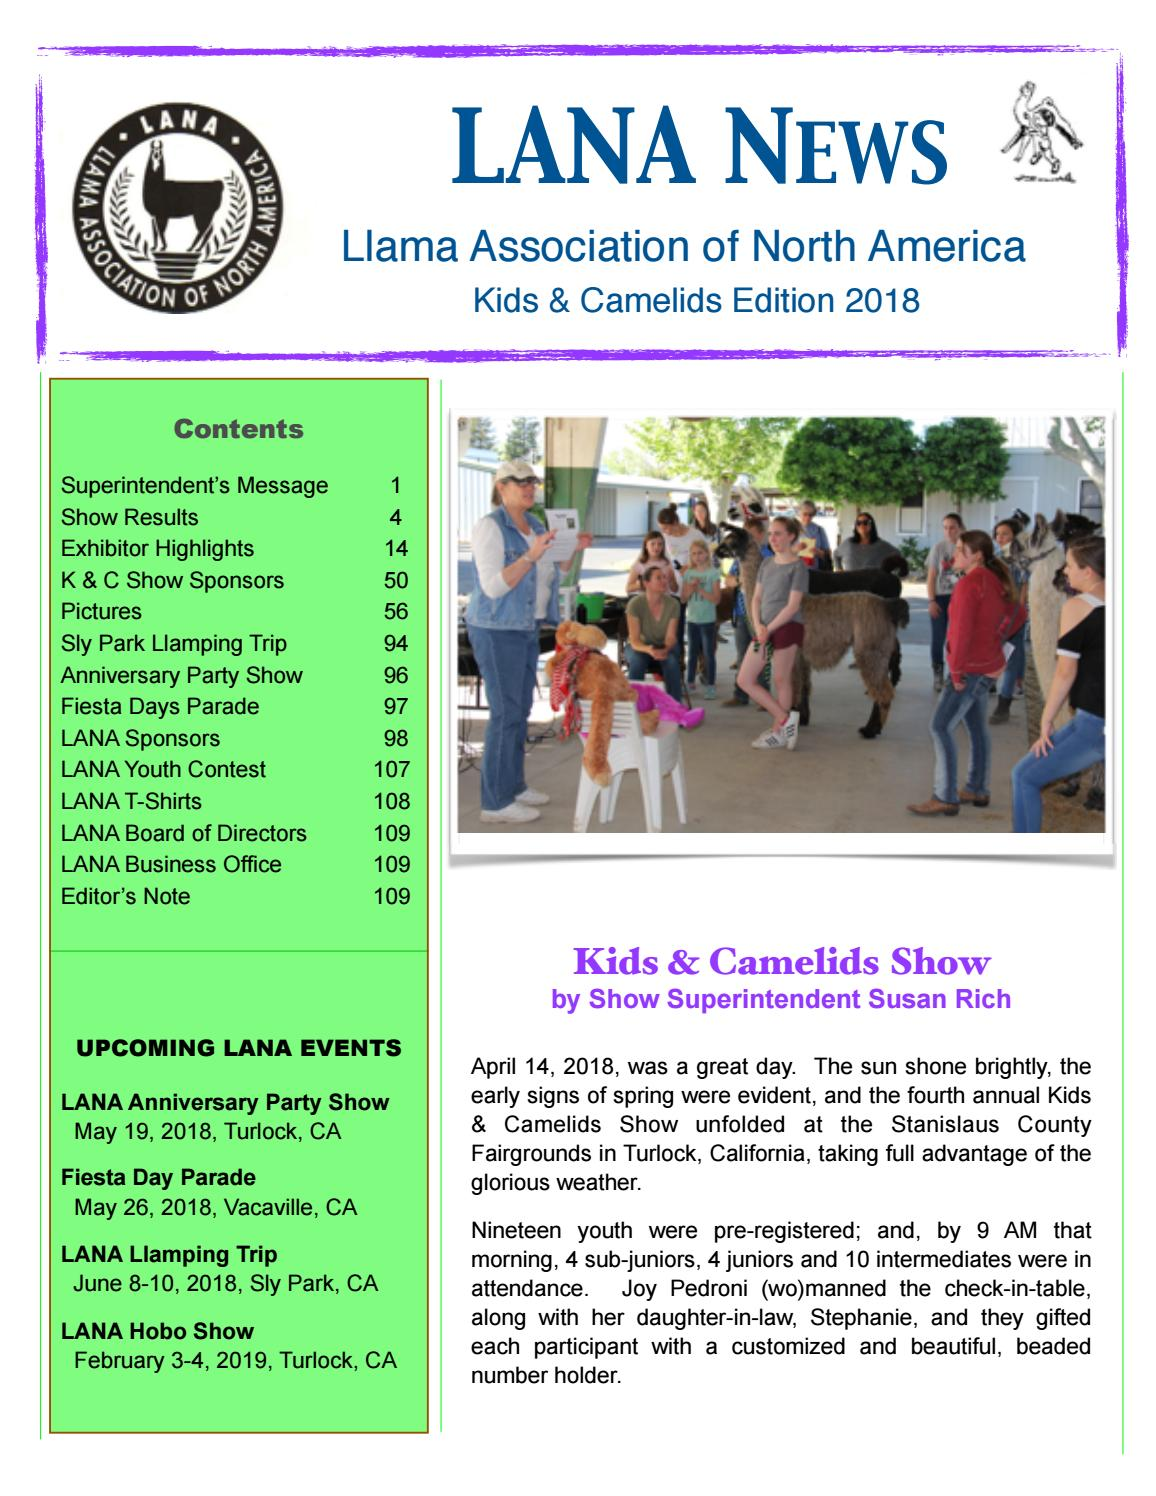 LANA Kids & Camelids 2018 by Llama Association of North